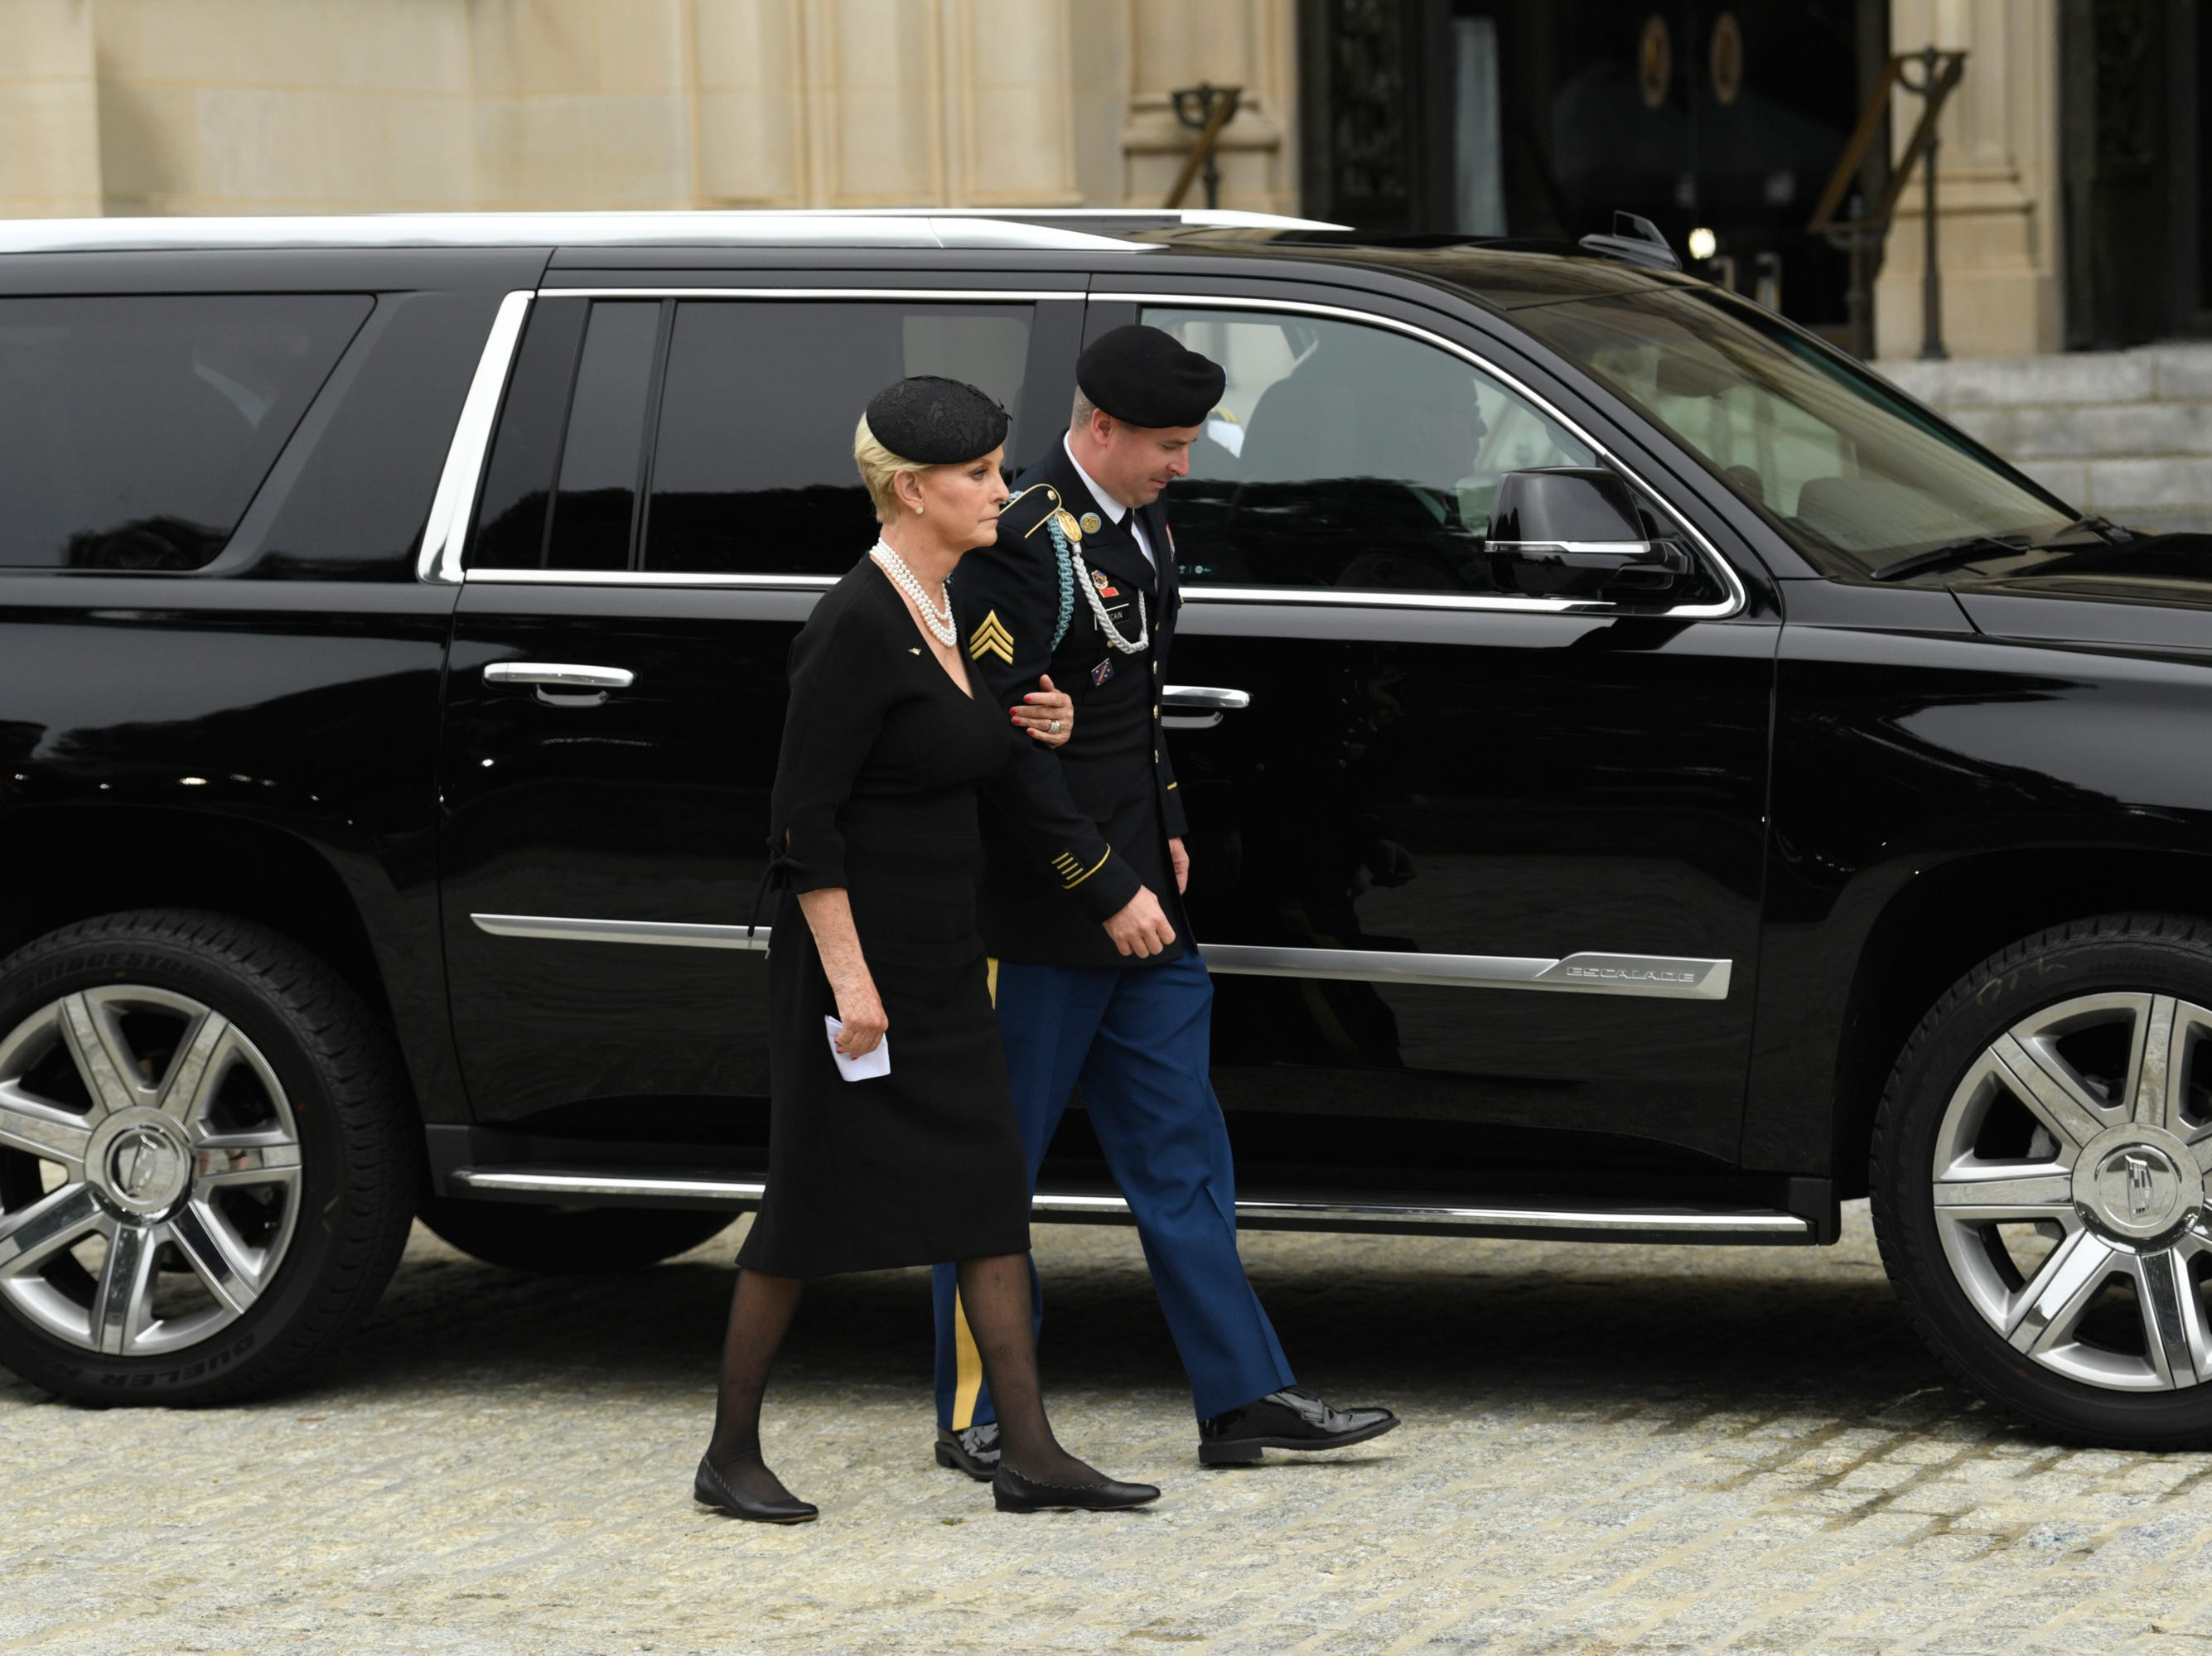 9/1/18 9:41:05 AM -- Washington, DC, U.S.A  -- Cindy and James McCain arrive at the National Cathedral in Washington for a memorial service for John McCain on Sept. 1, 2018. Sen. McCain on Aug. 25. McCain died on Aug. 25. --    Photo by Jasper Colt, USA TODAY Staff